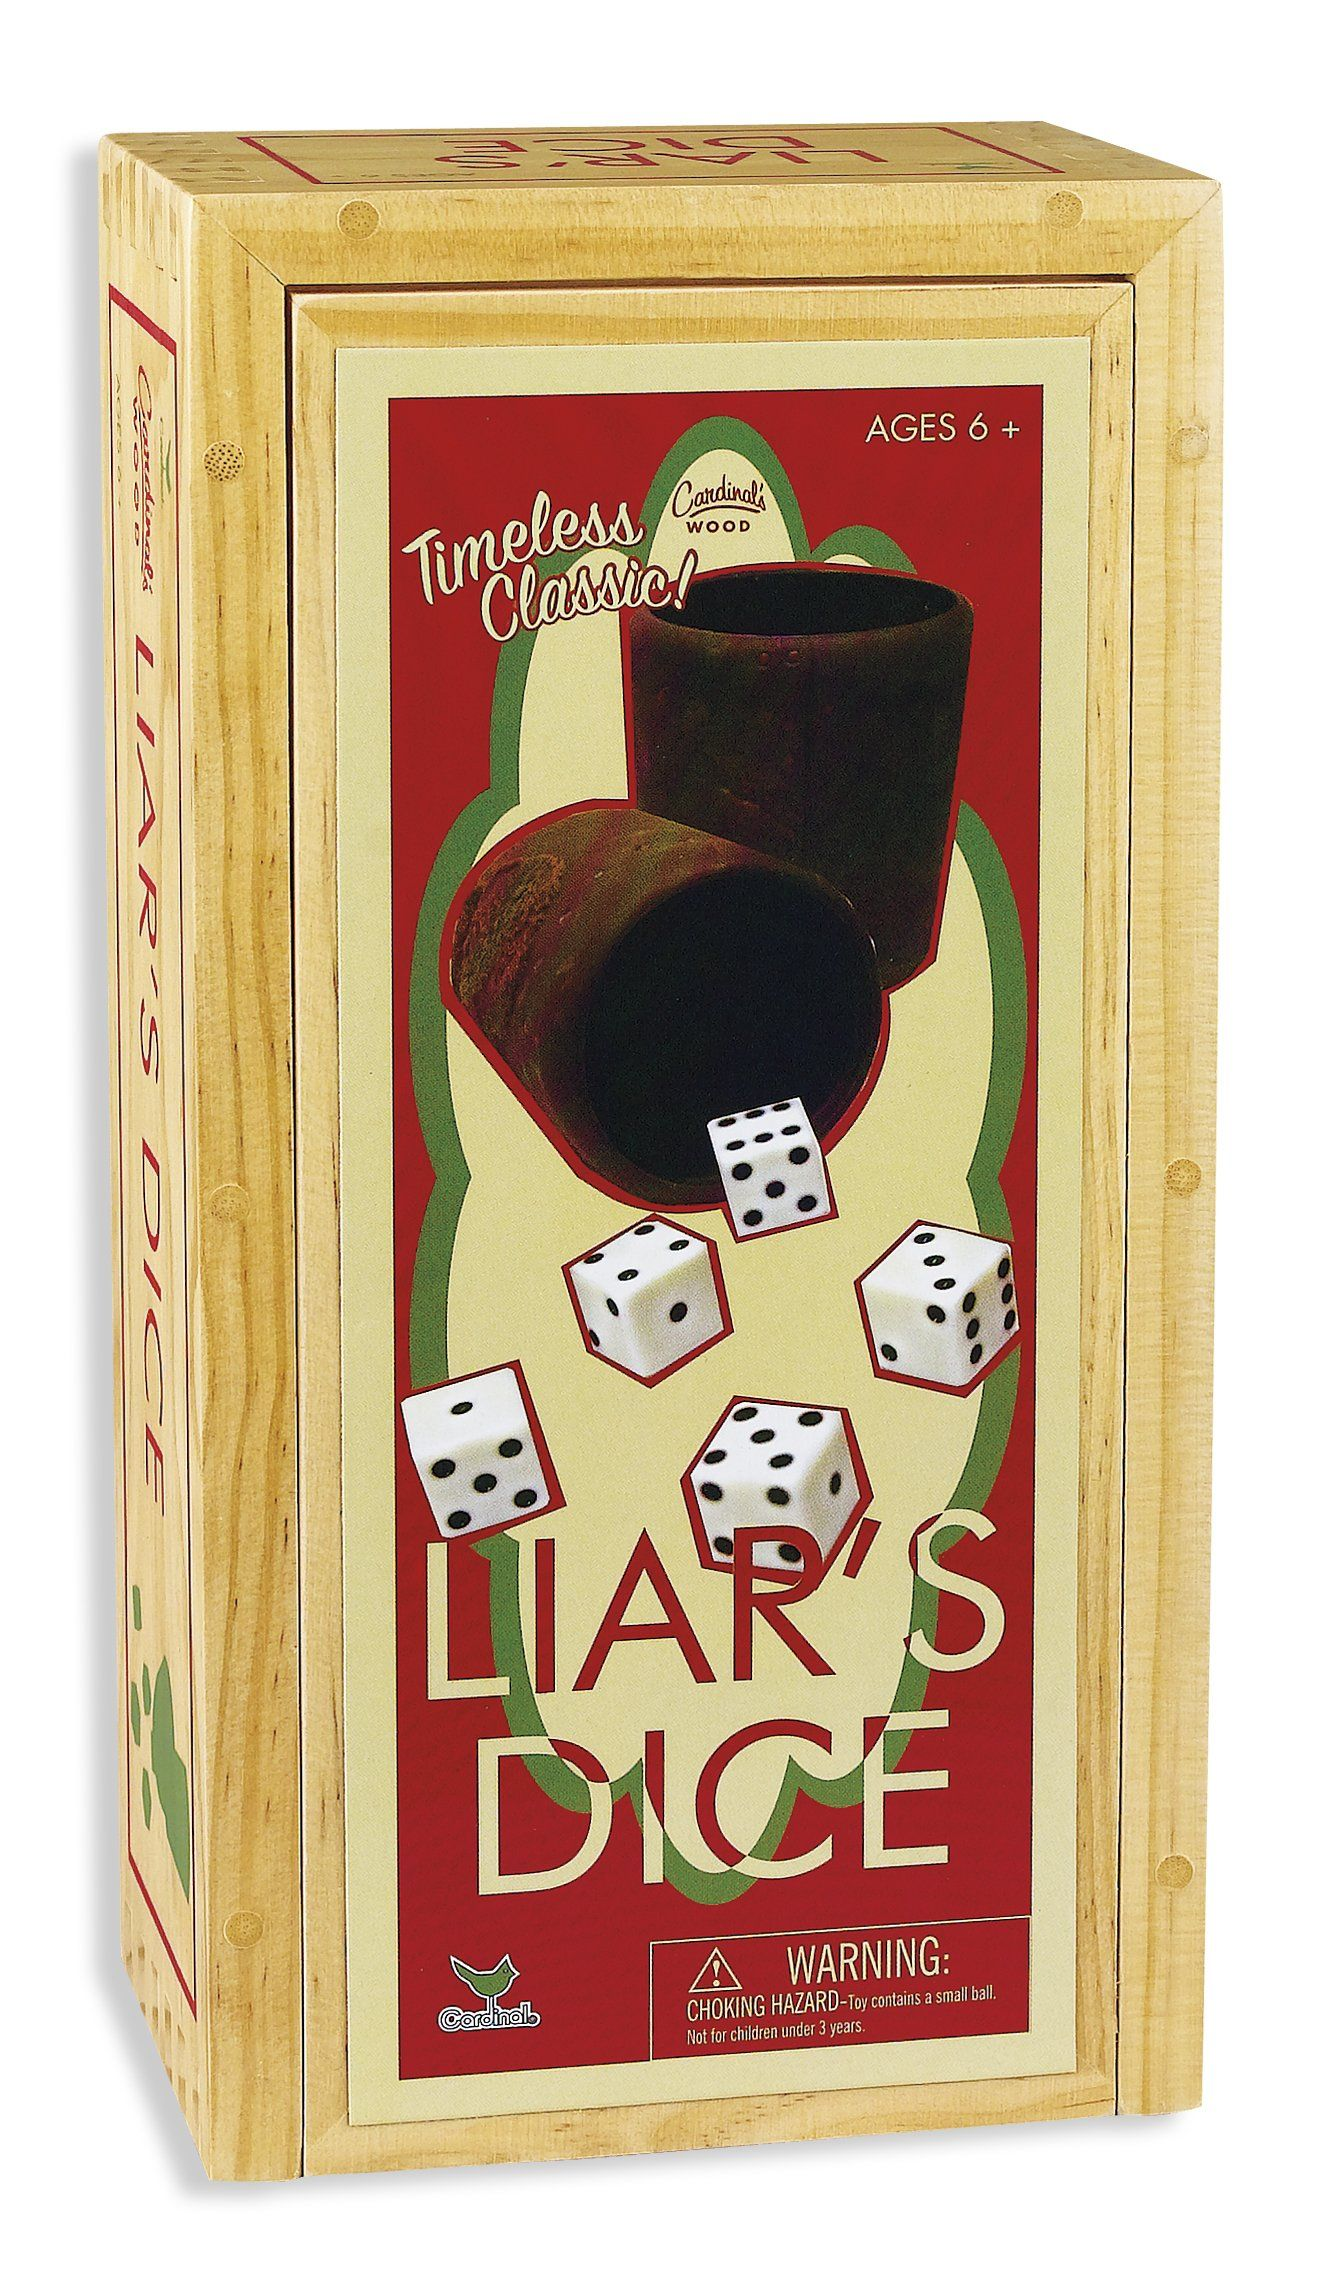 Cardinal Games Liars Dice In Wood Box Retro Game Retro